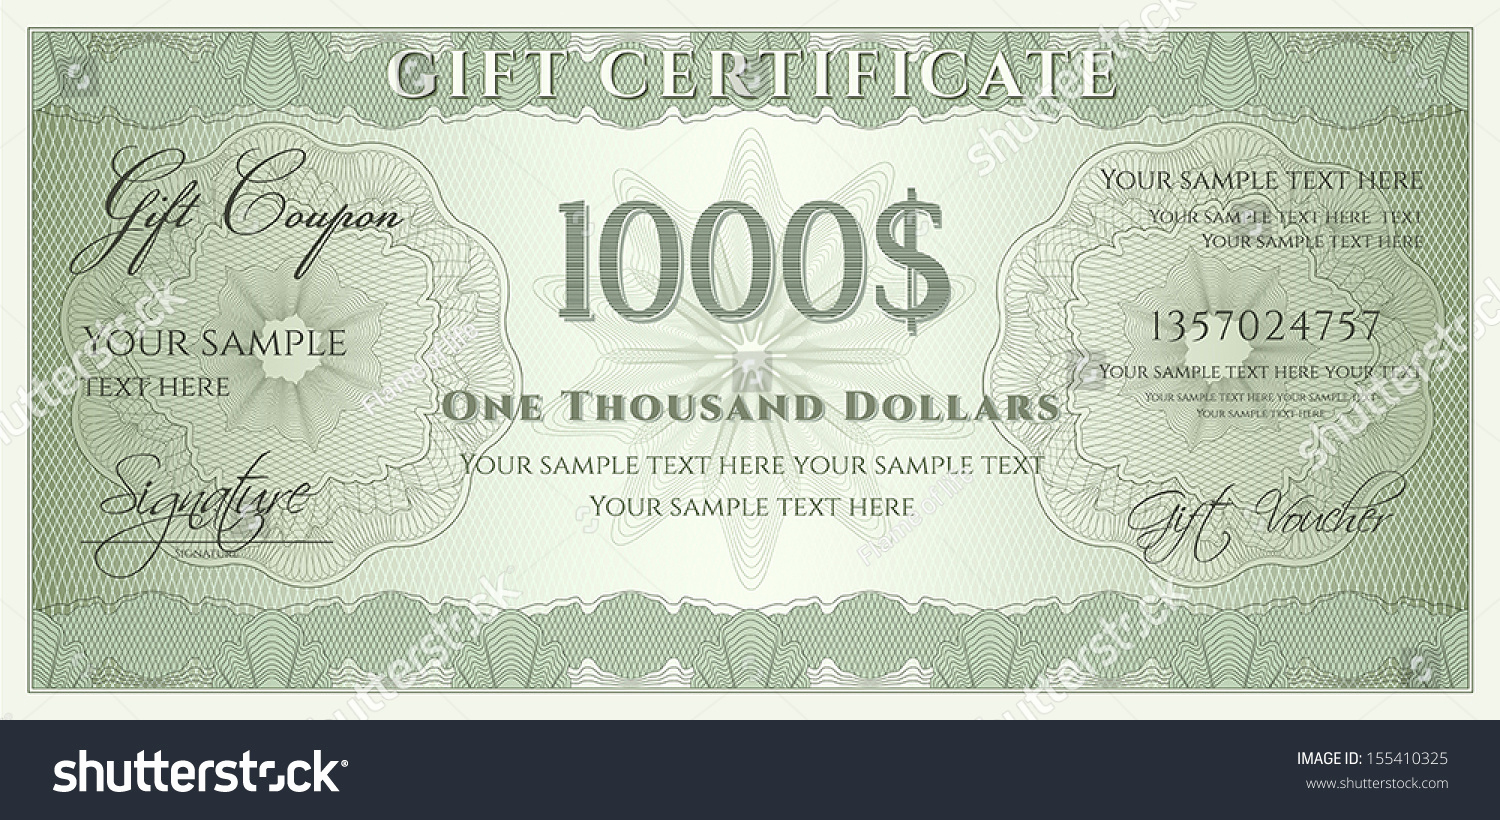 Money Gift Certificate Template Best Of Voucher Gift Certificate Coupon Ticket Template